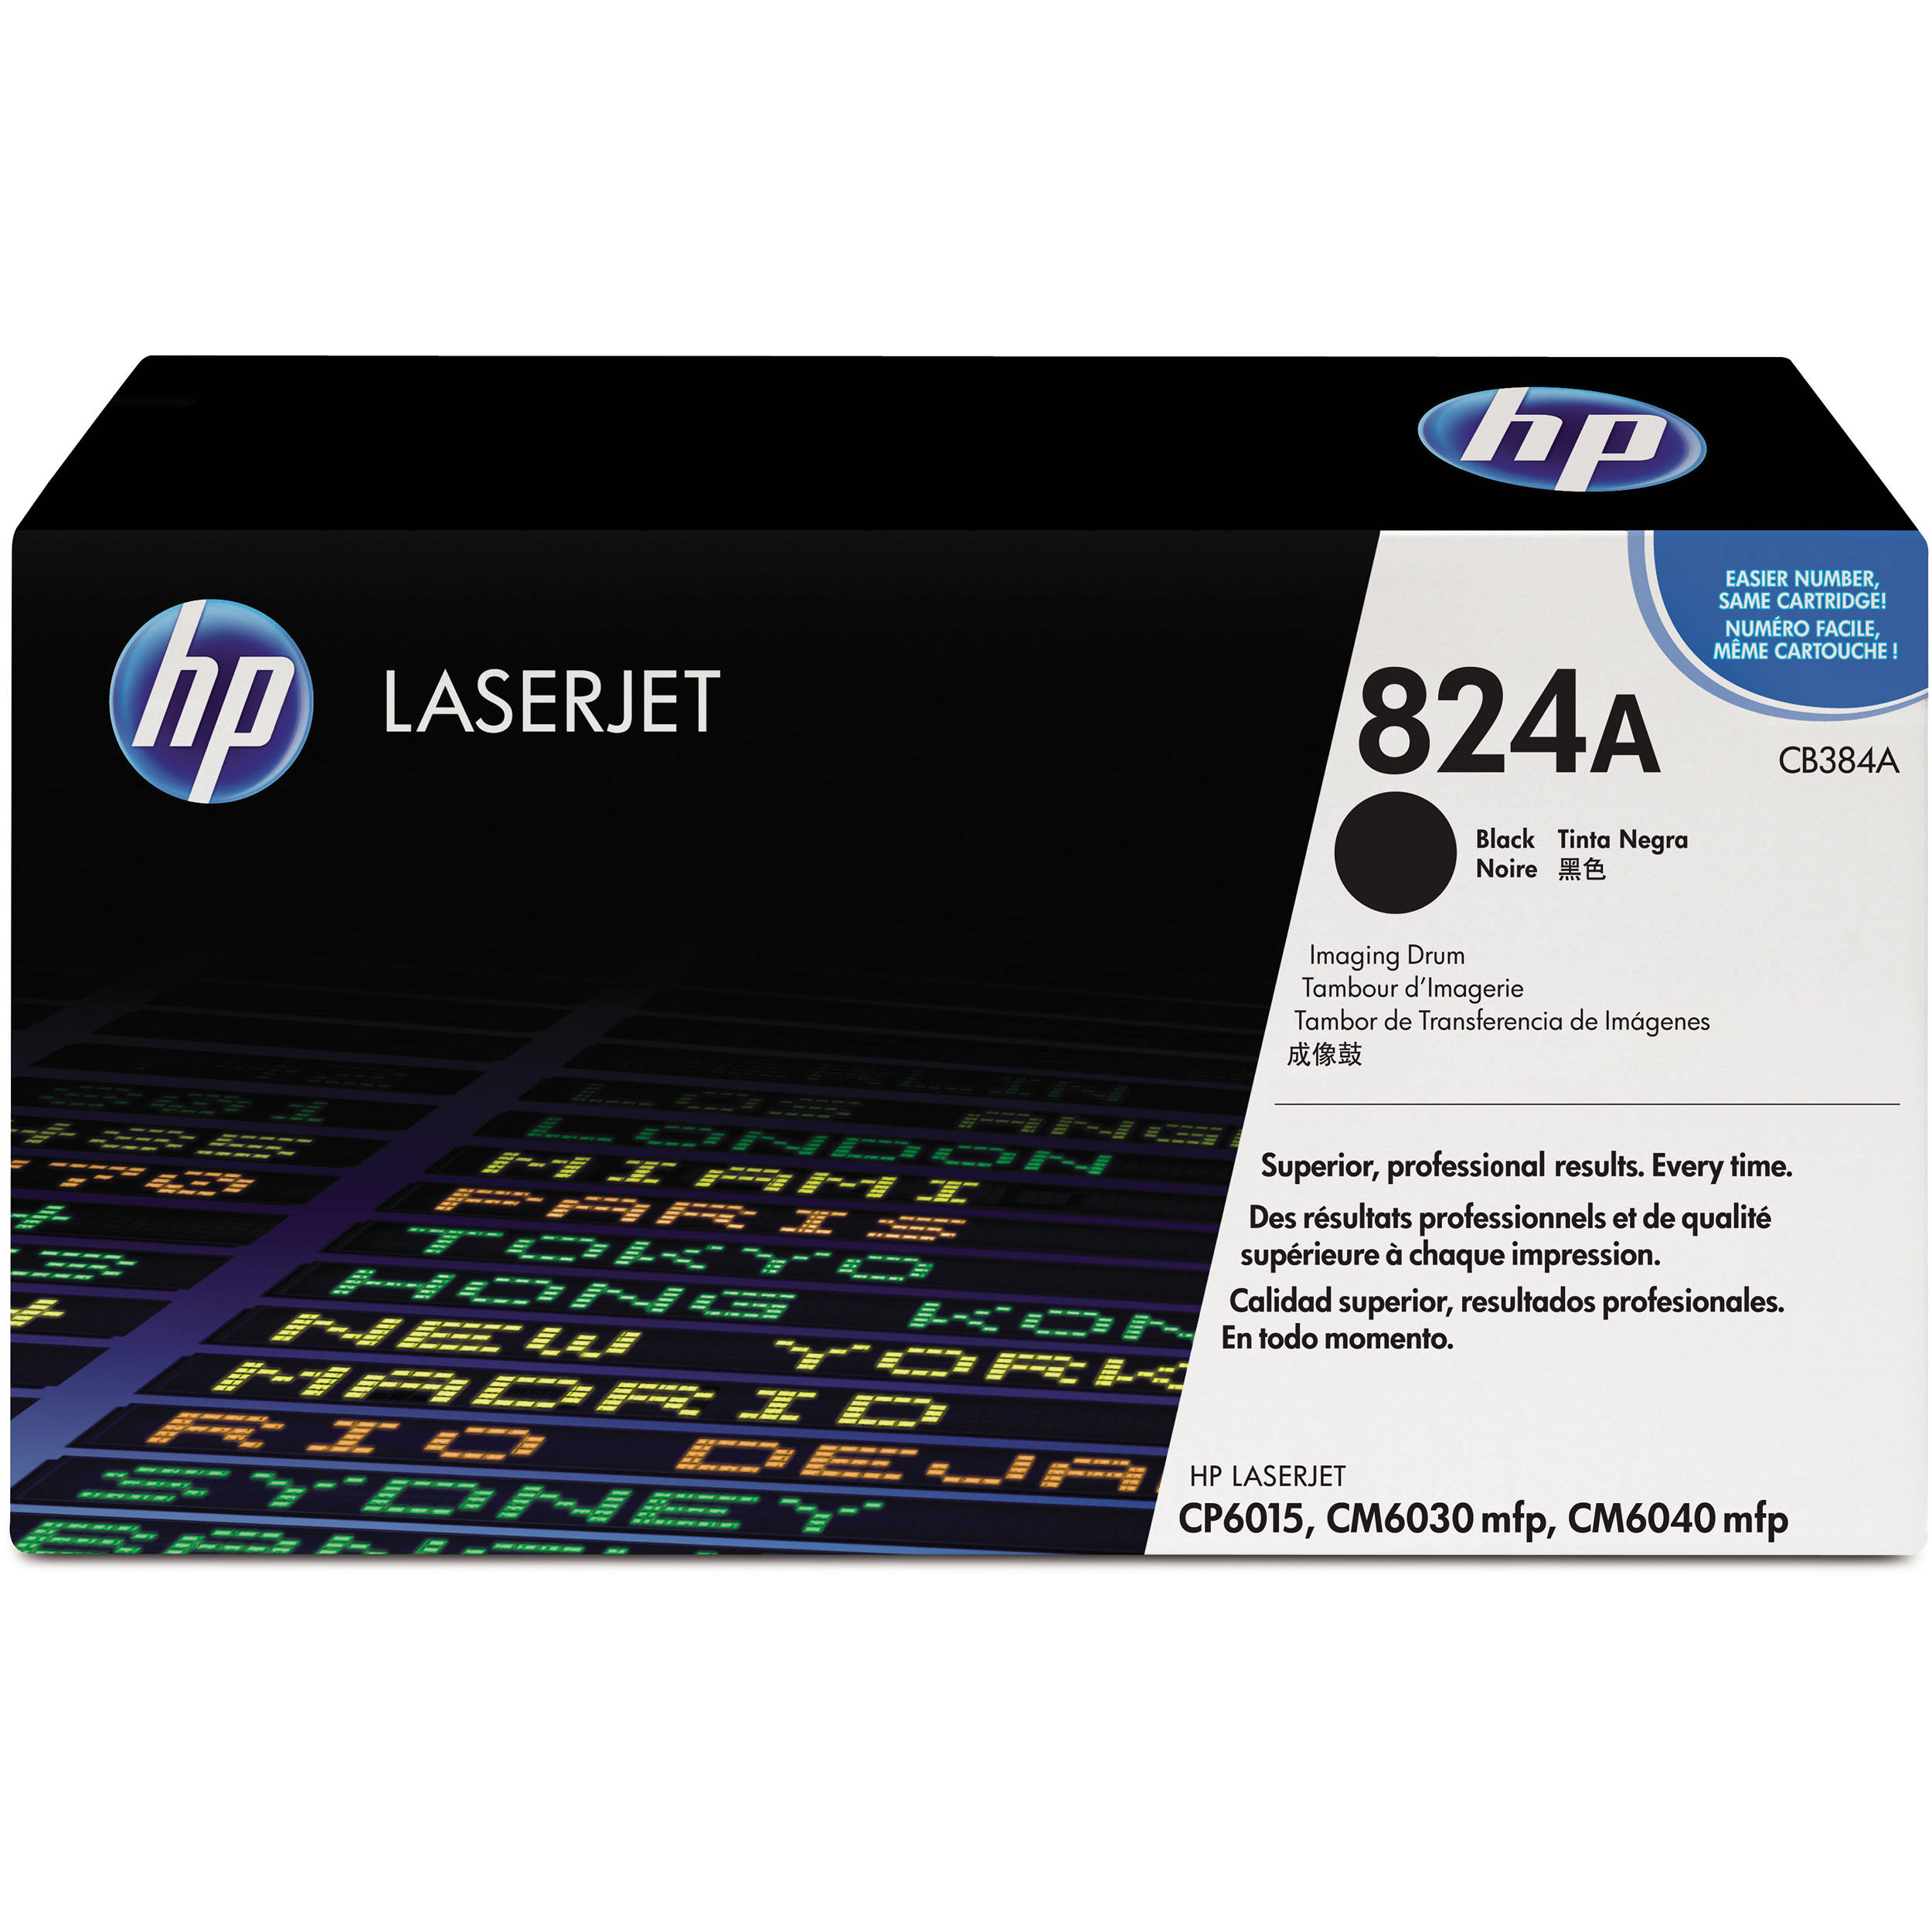 HP 824A Black Image Drum CB384A